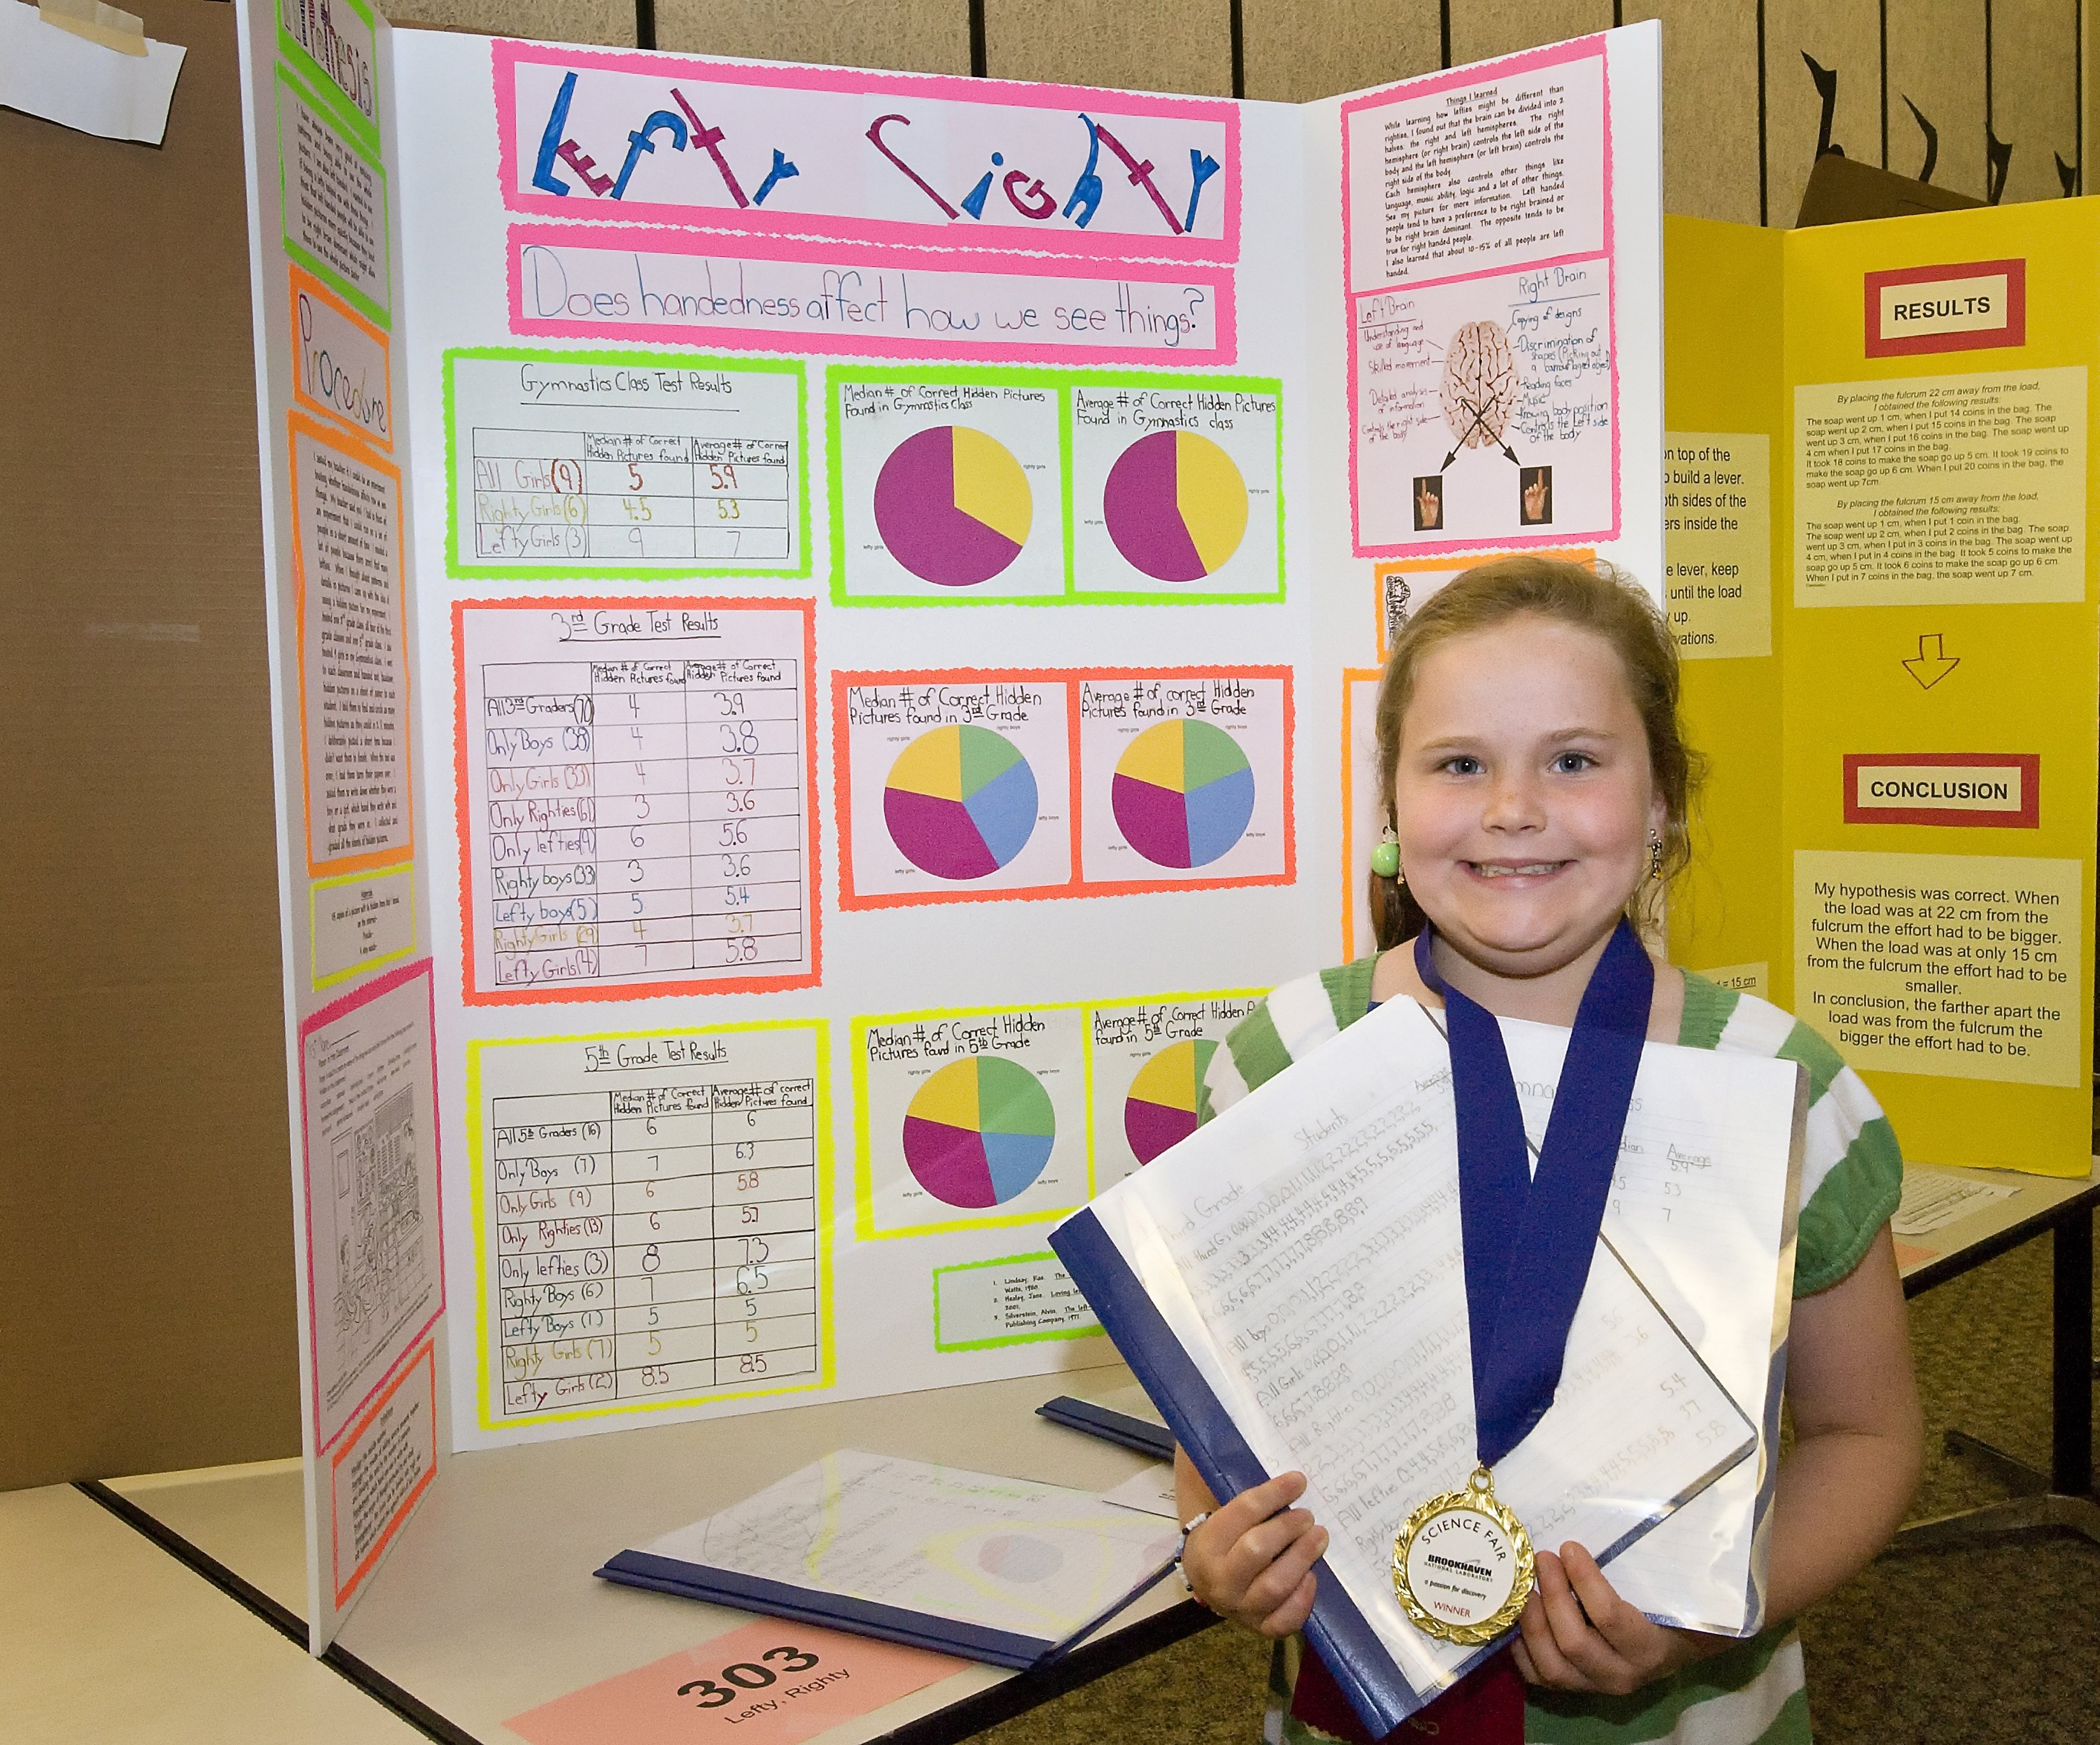 10 Wonderful Science Fair Projects Ideas For 4Th Grade from ant control to wind energy winning projects at brookhaven 44 2021